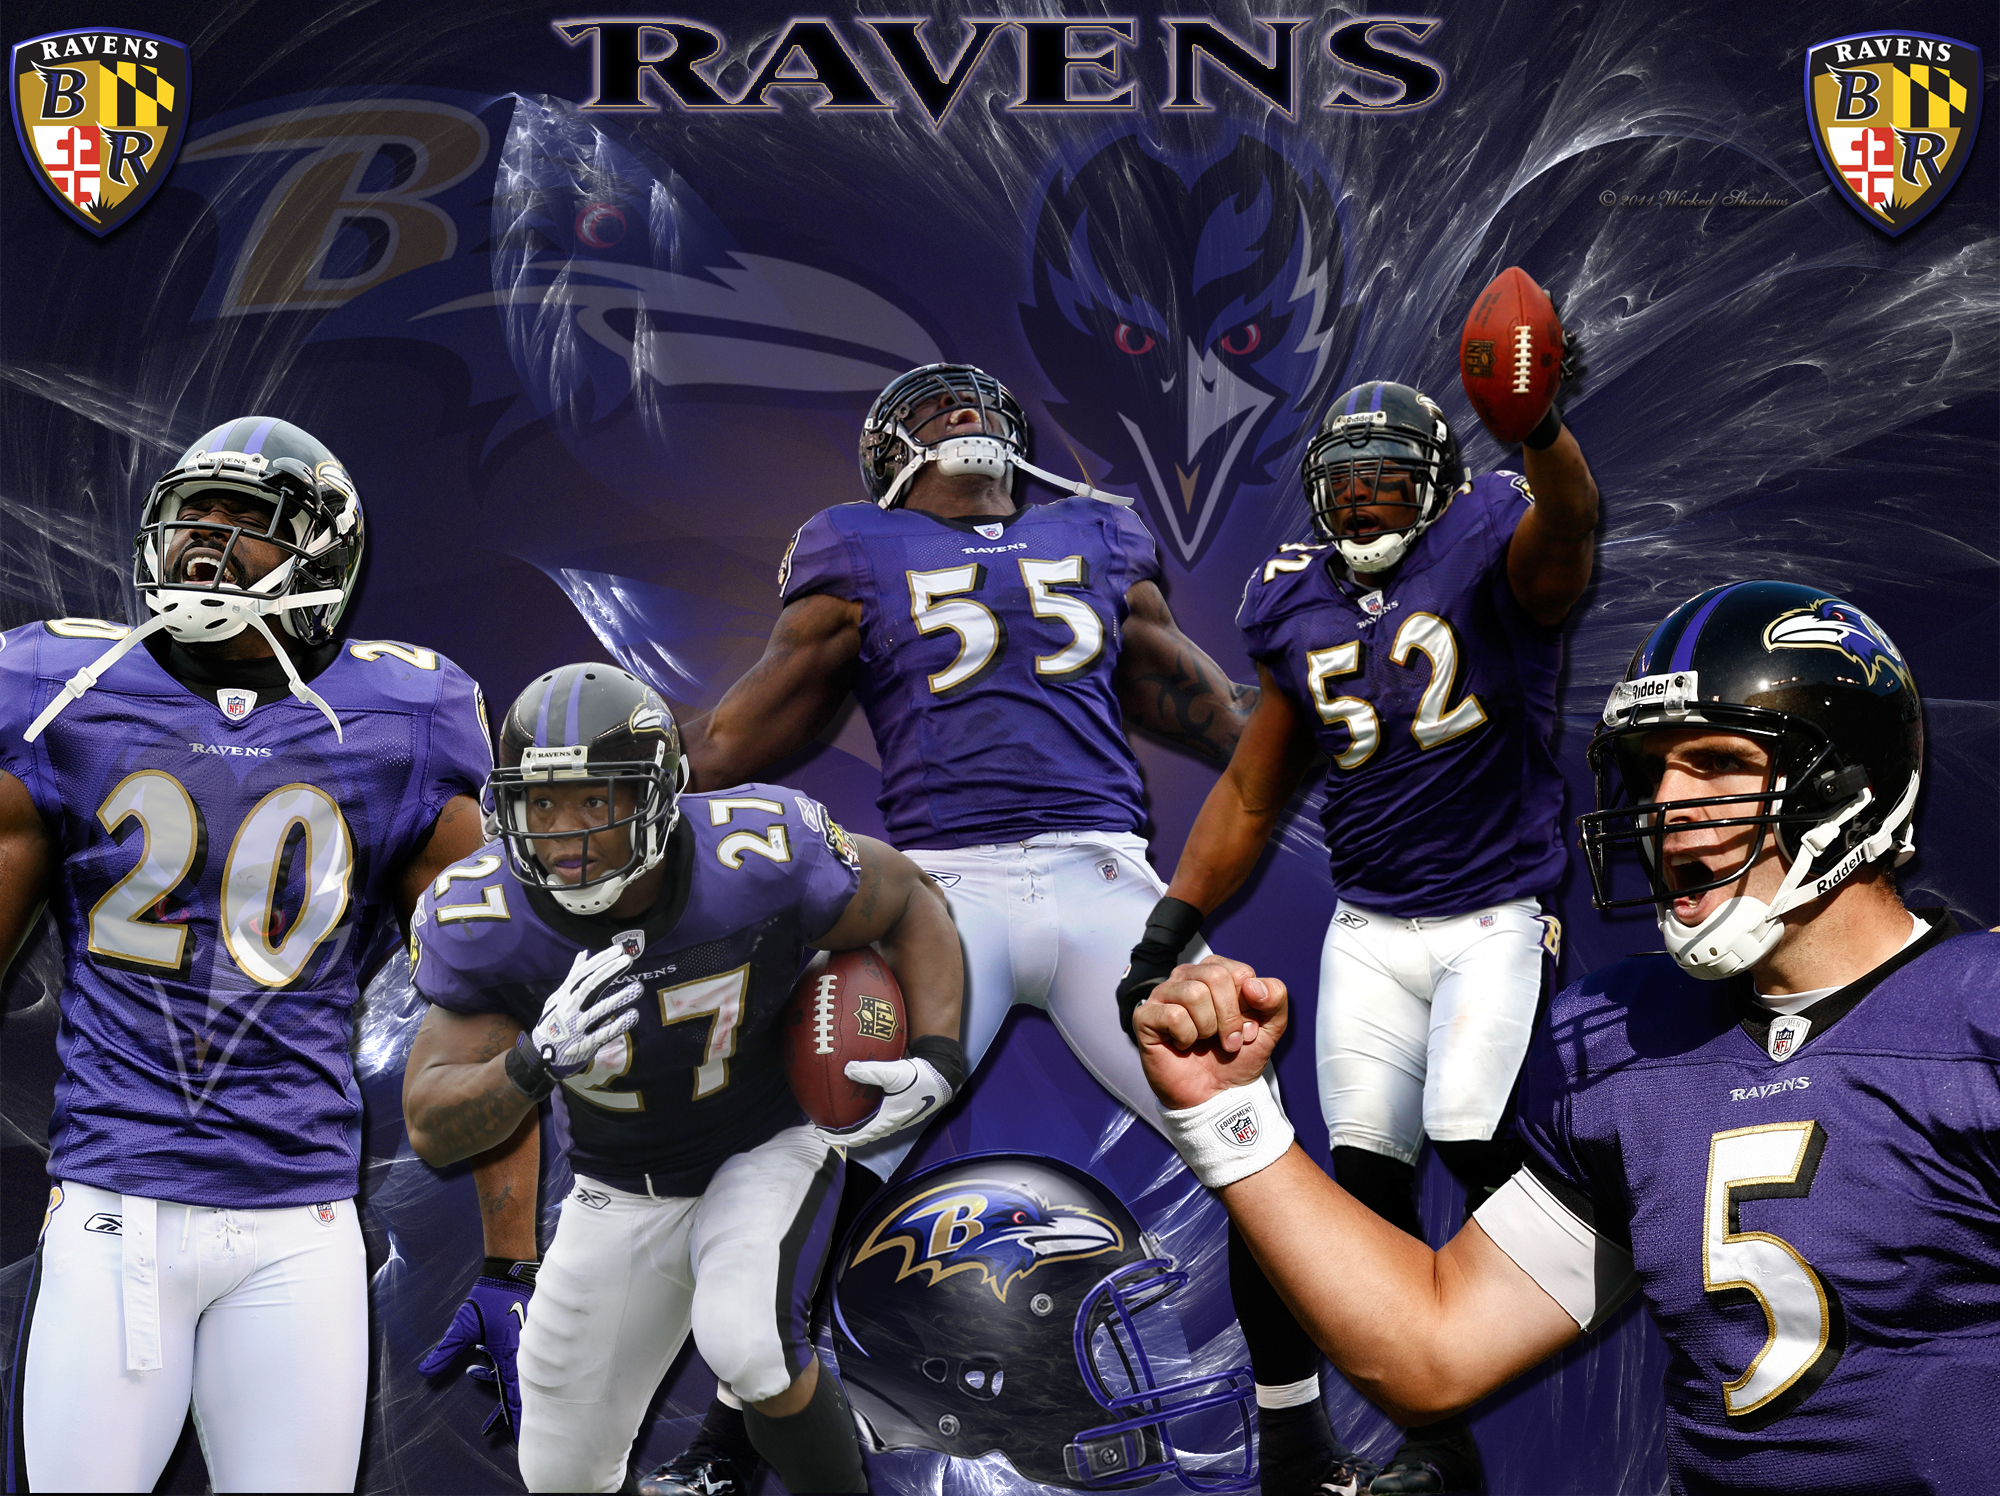 Baltimore Ravens HD background Baltimore Ravens wallpapers 2000x1496